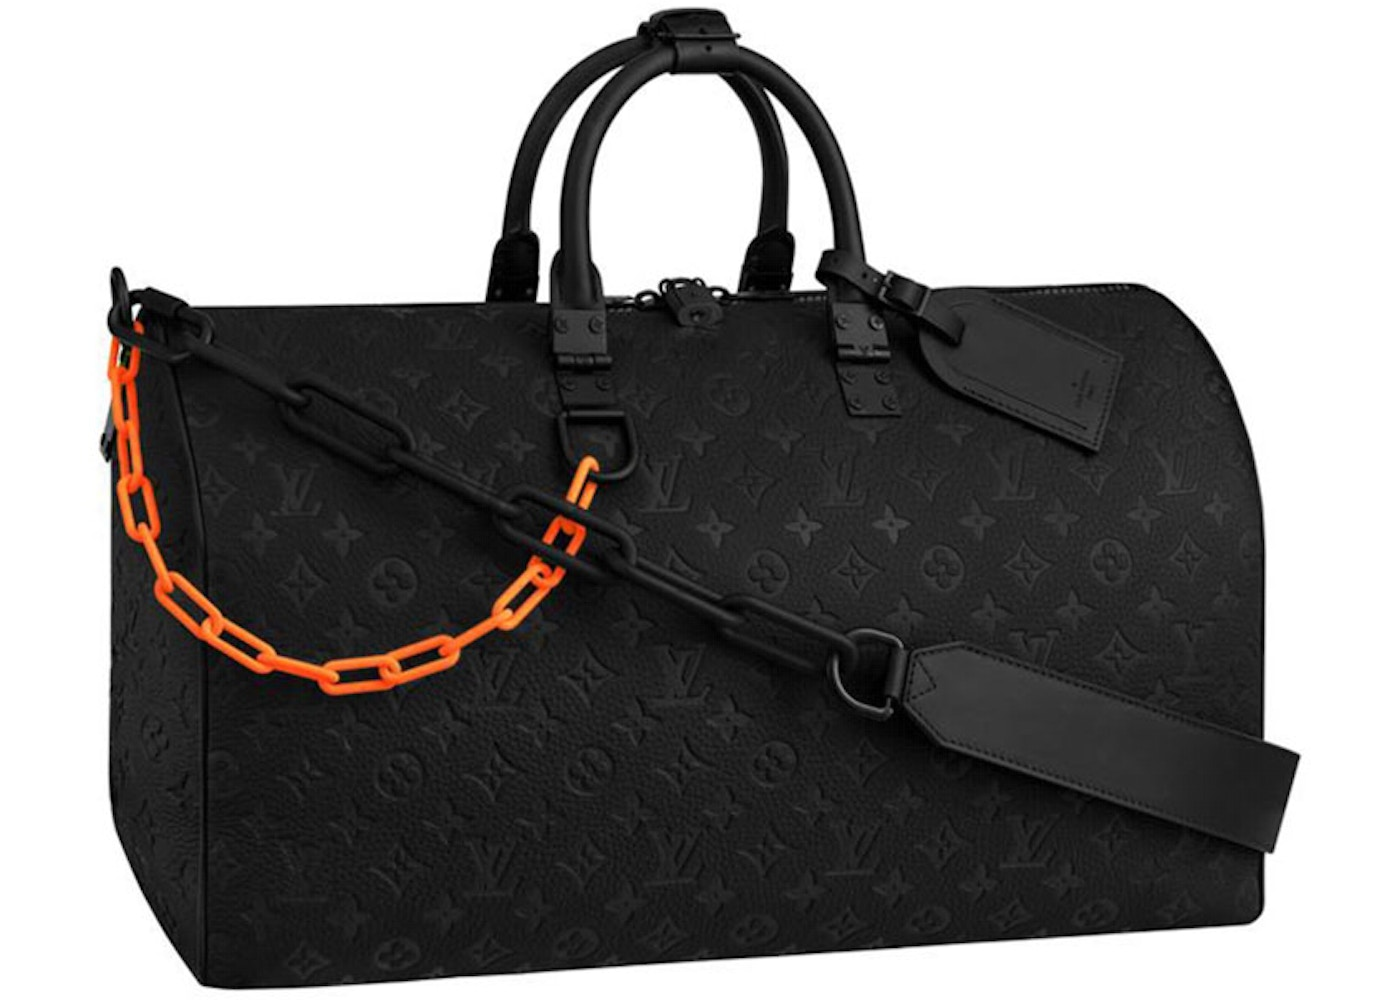 7ae866e2986 Louis Vuitton Keepall Monogram Bandouliere 50 Black